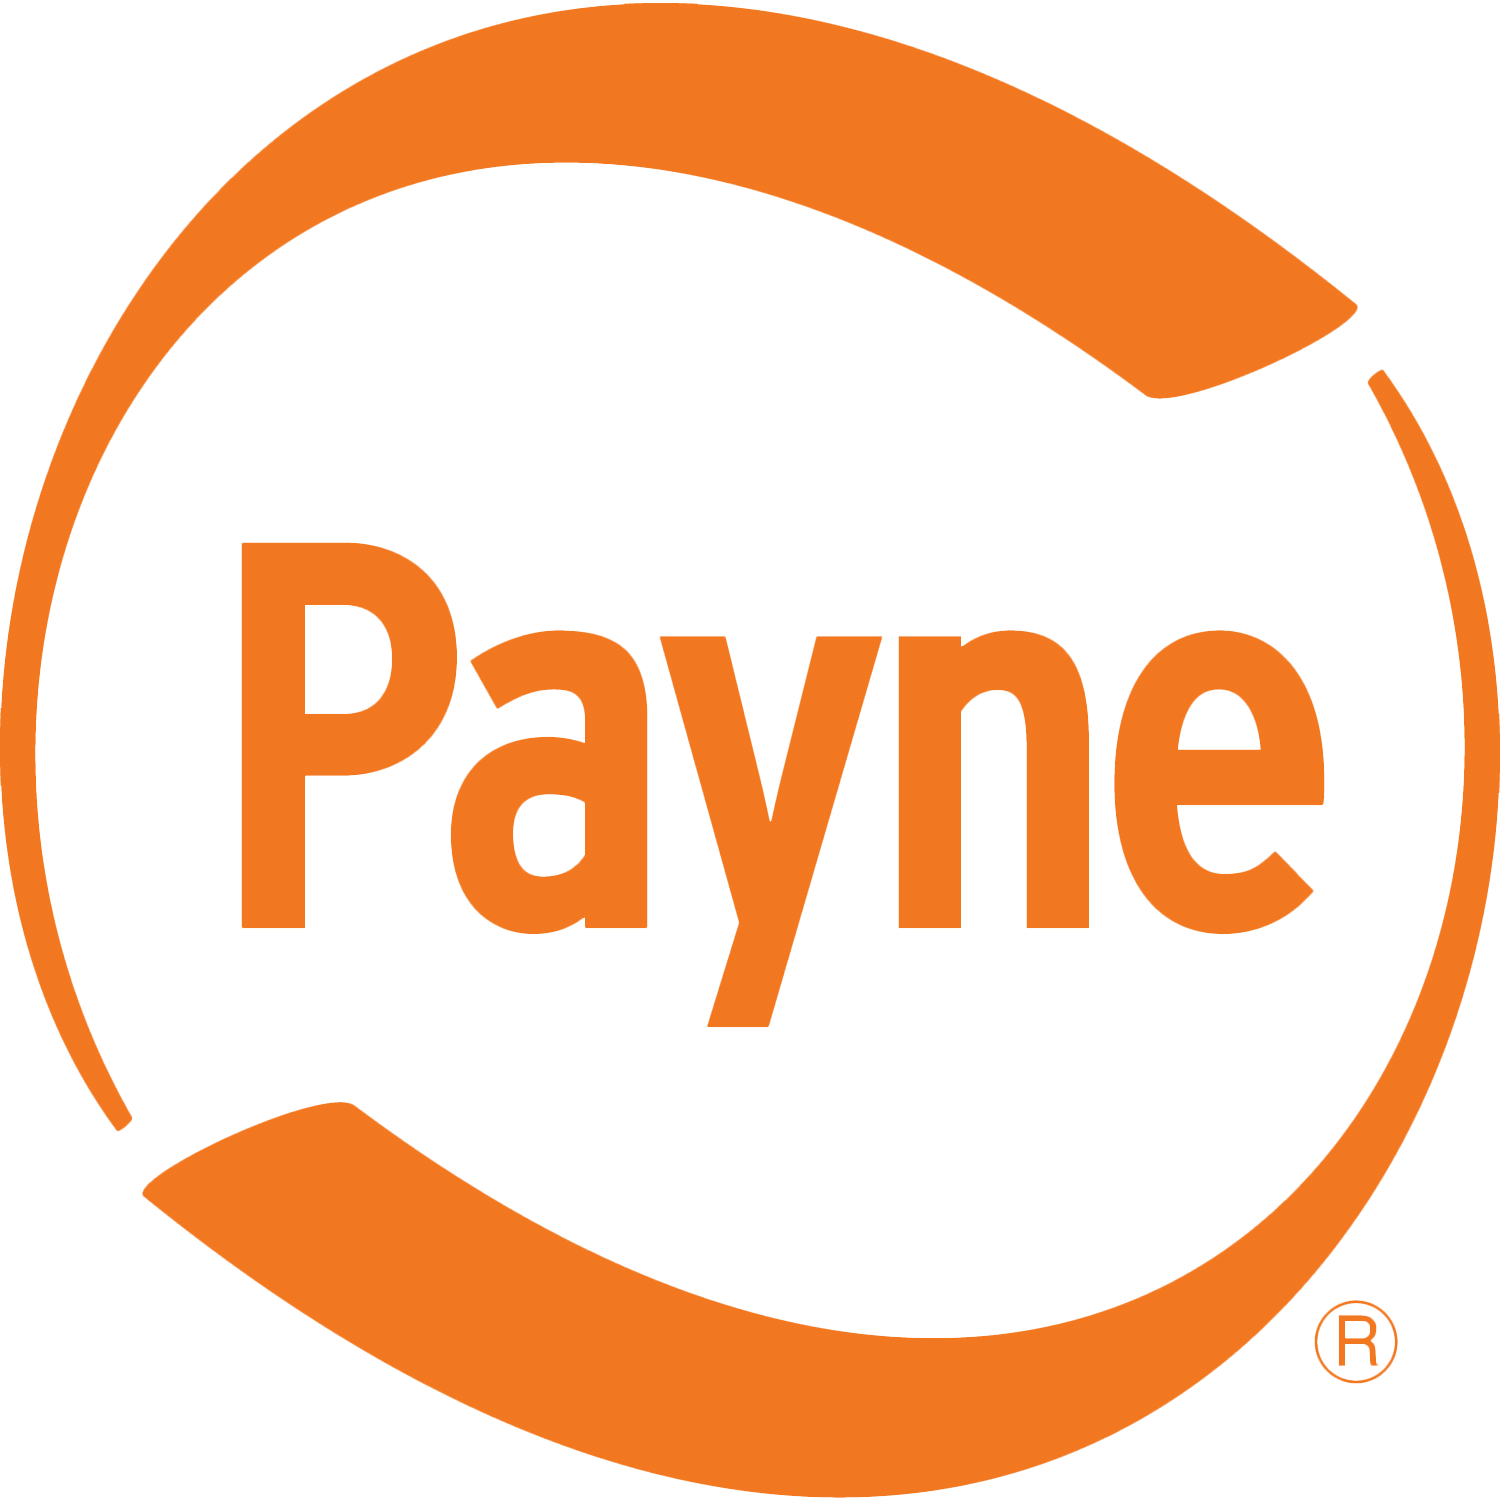 We provide heat pump repairs & installations for Payne HVAC products in the Charlotte NC, Harrisburg NC, Huntersville NC, Matthews NC, Concord NC, Cornelius NC and many more areas